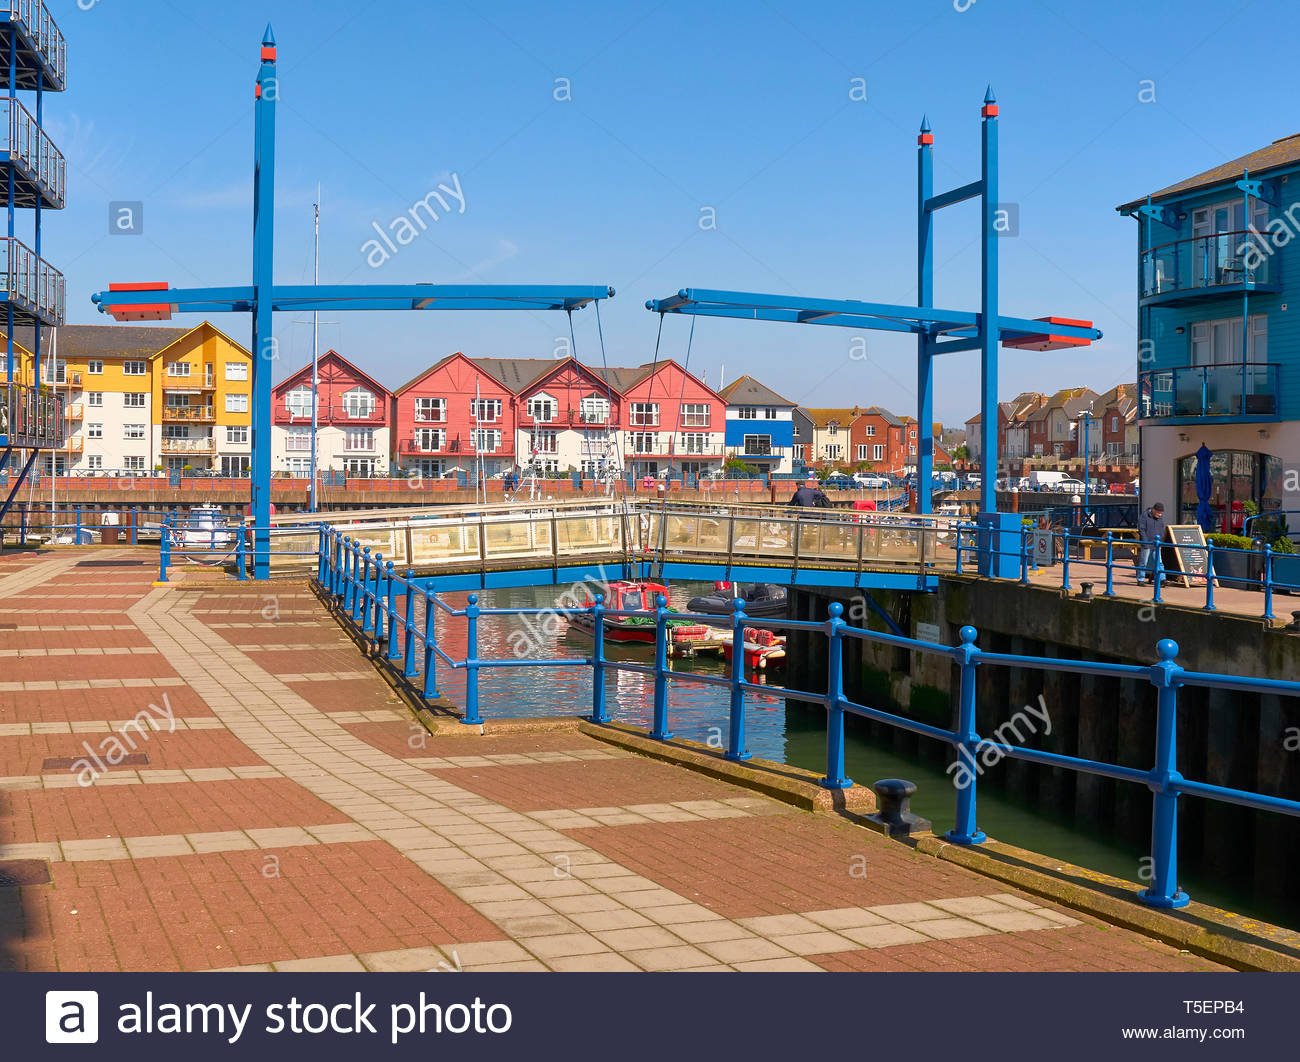 The exe estuary leading into exmouth marina in south devon in england uk Stock Photo